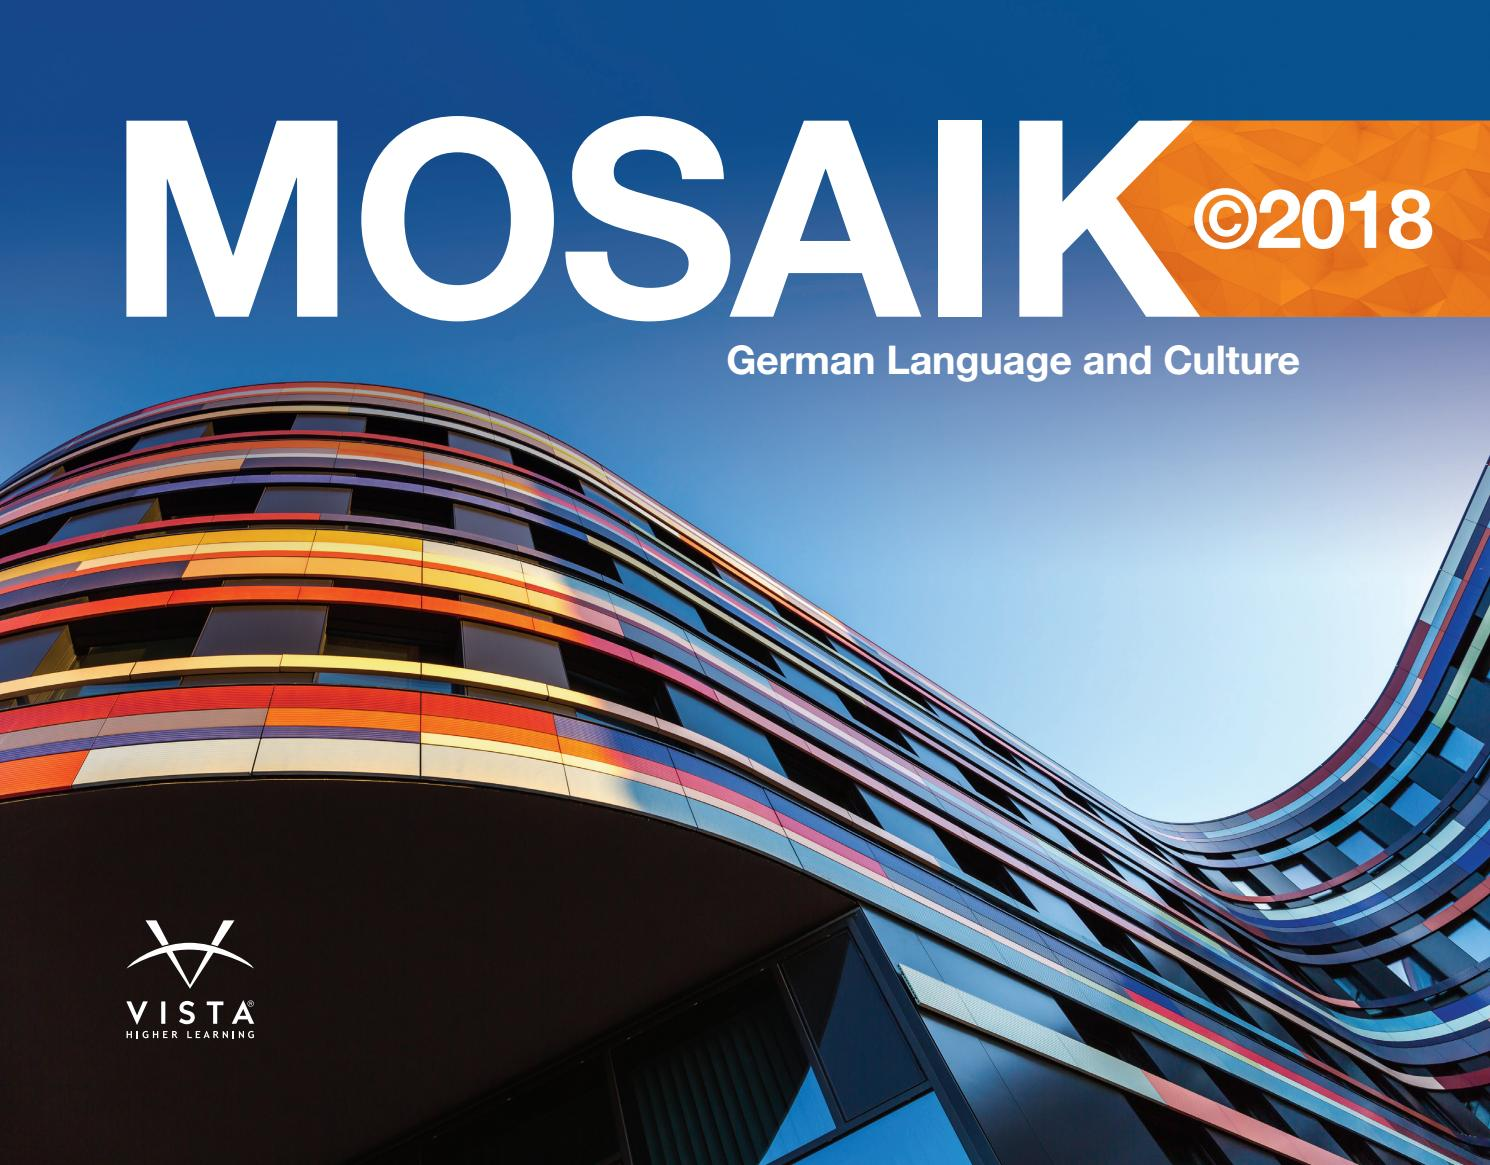 Mosaik Bad Set Mosaik 2018 Brochure By Vista Higher Learning Issuu